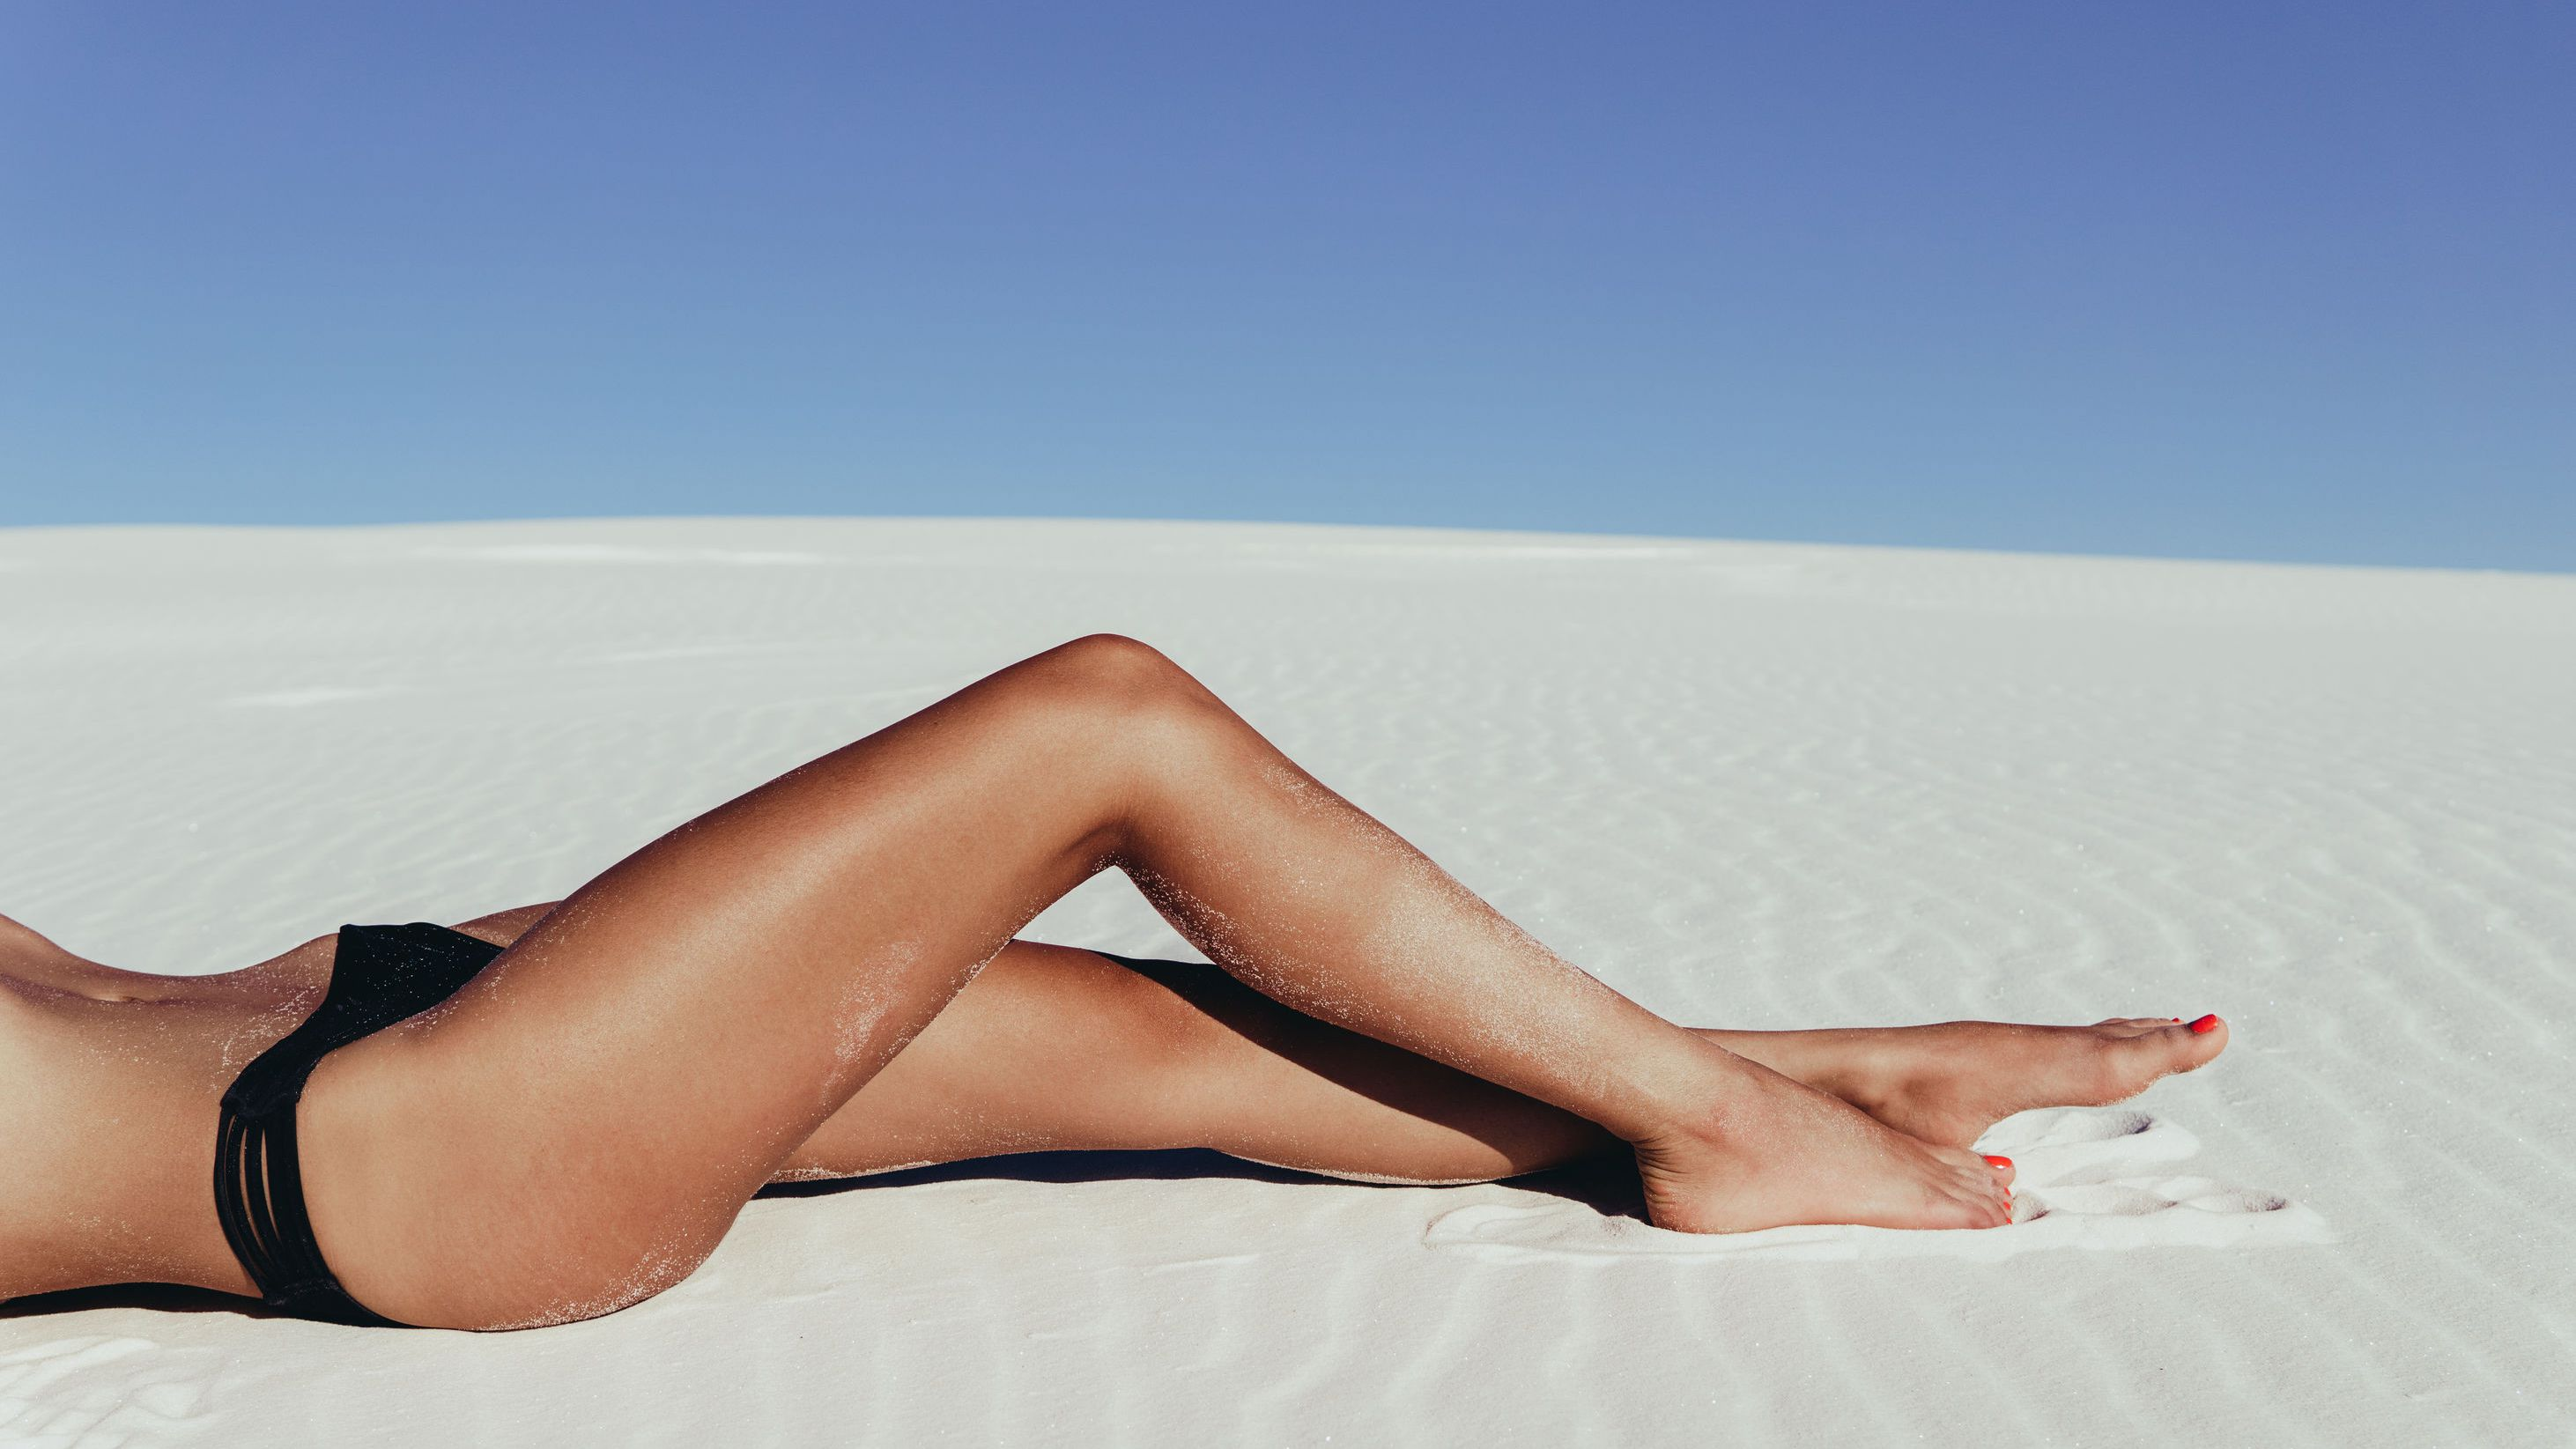 How To Get A Perfect Spray Tan According To A Celebrity Spray Tan Expert